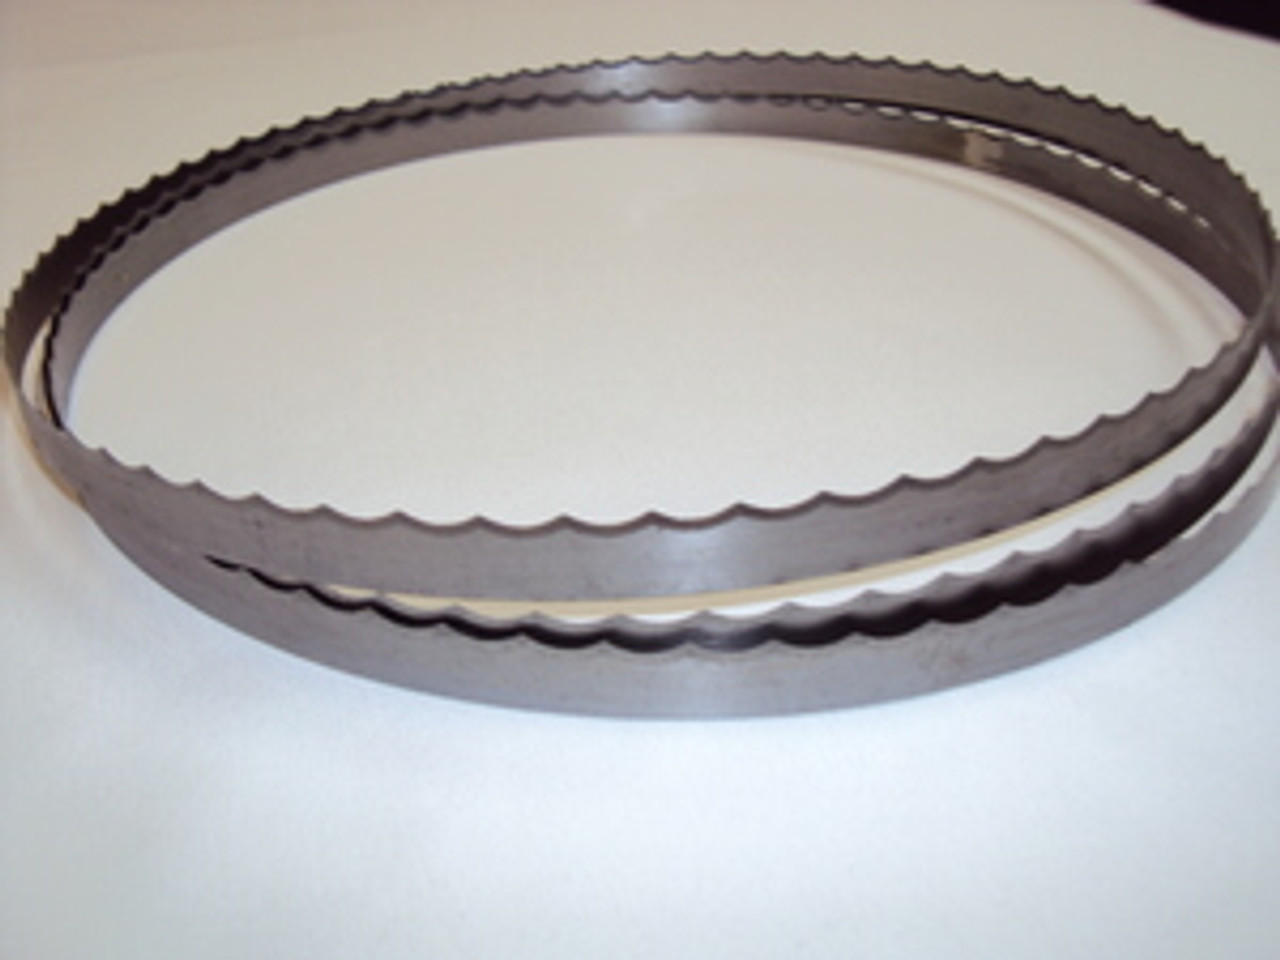 124 x 5/8 x 022  Scallop Edge, Boneless Band Saw Blade